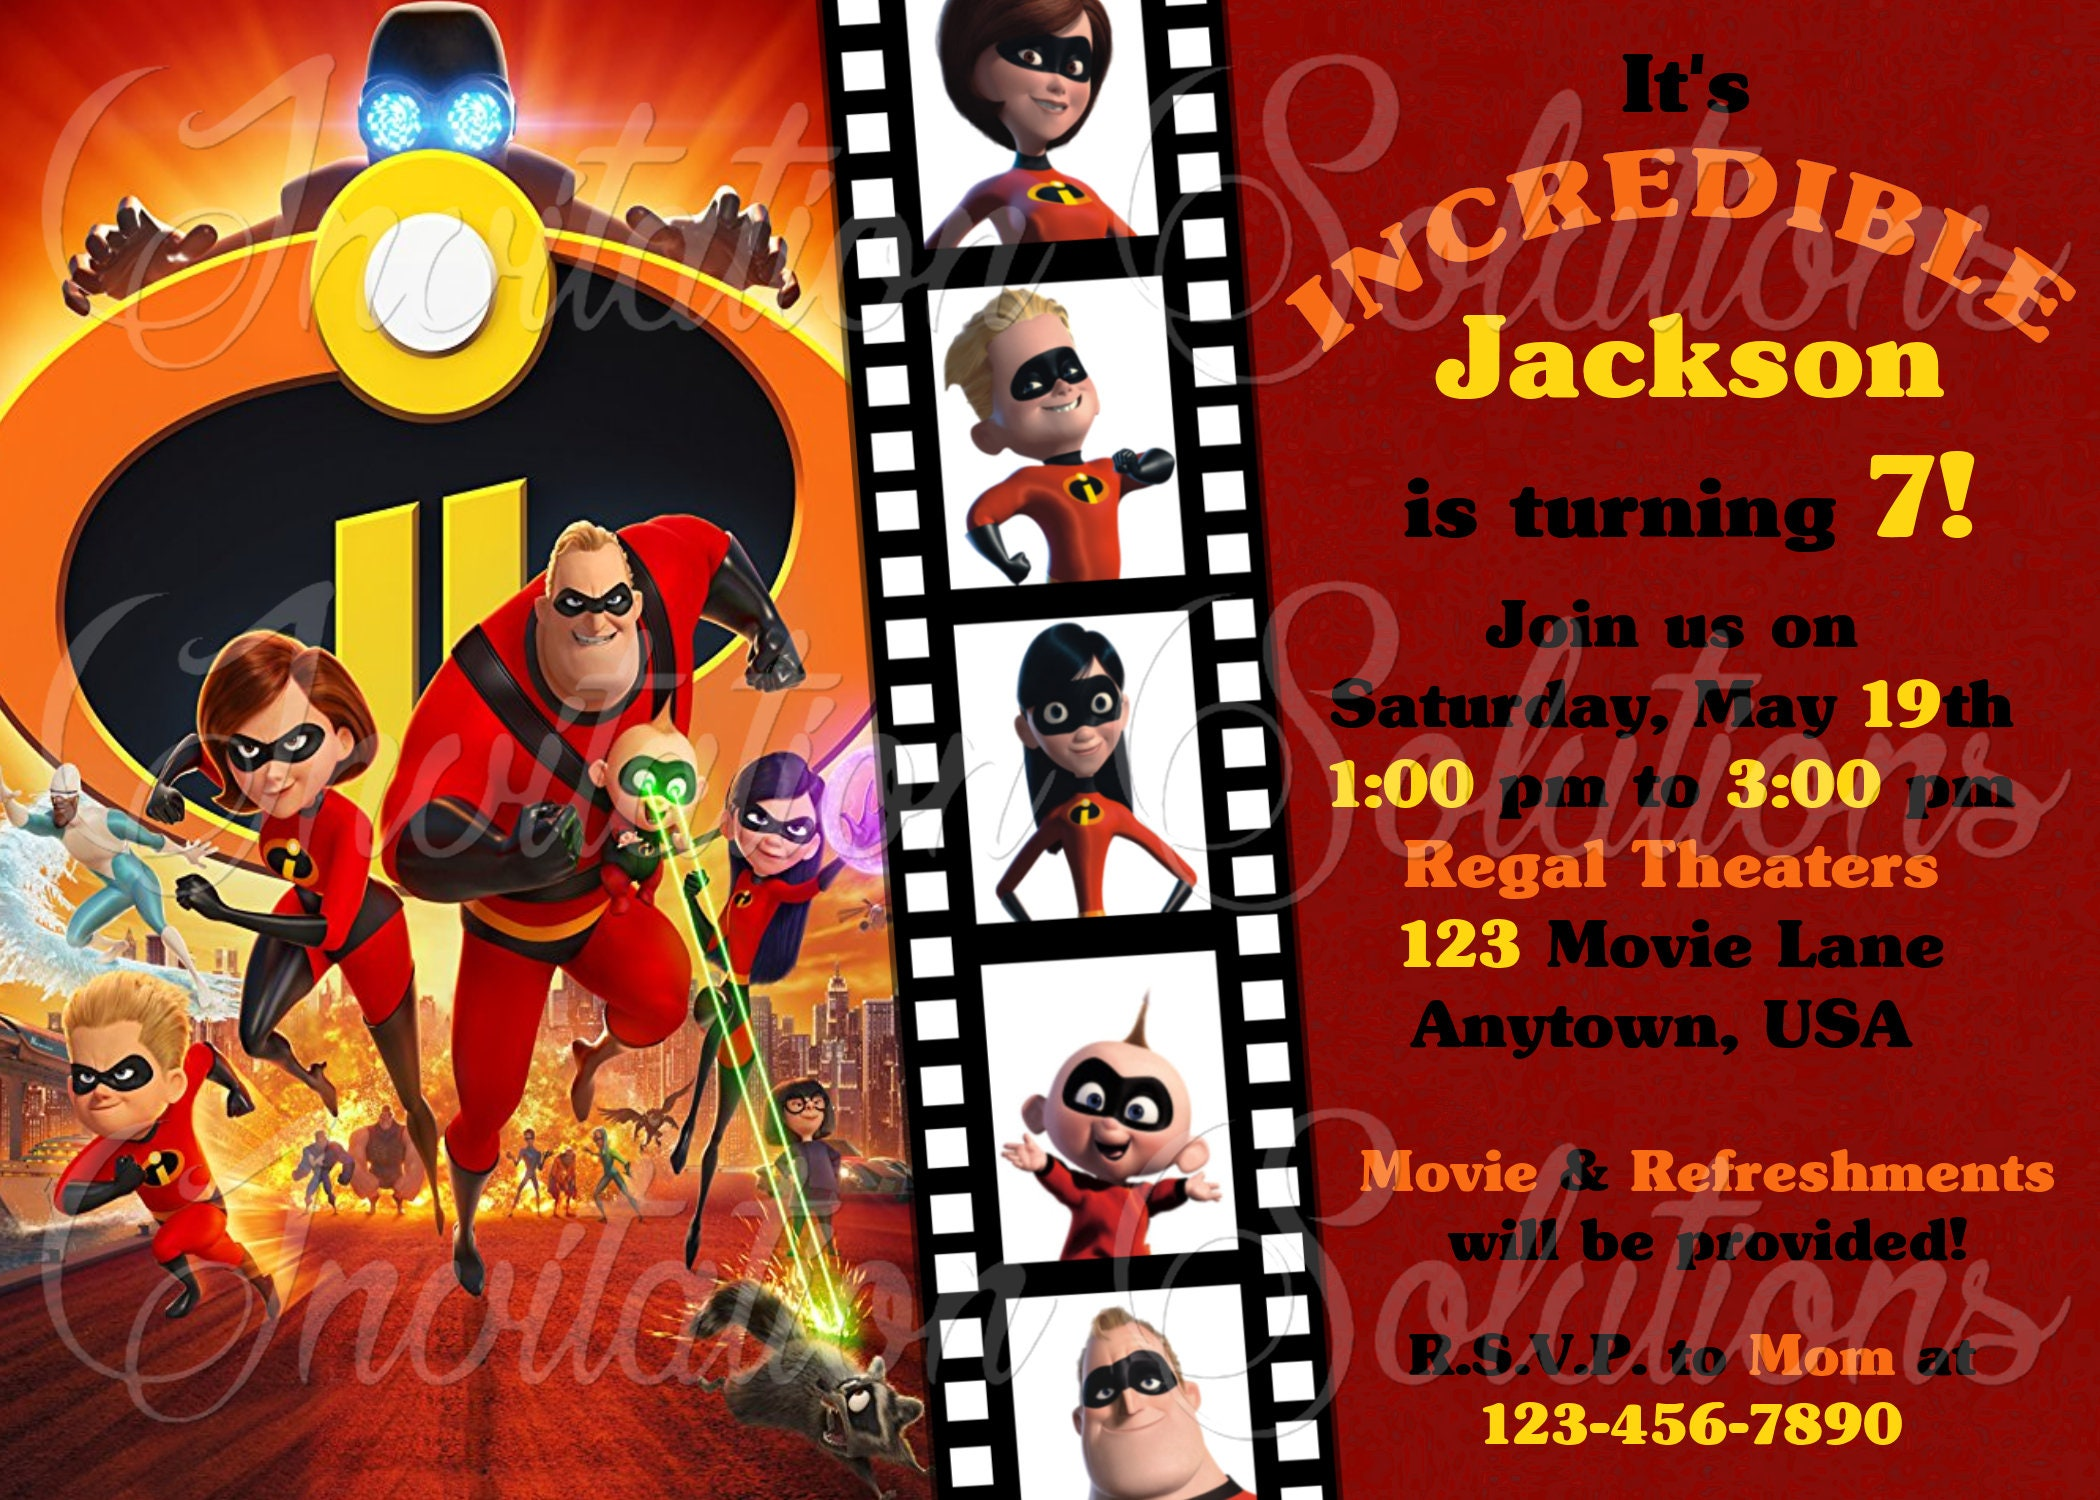 The Incredibles 2 Birthday Party Invitation/ Movie Themed | Etsy